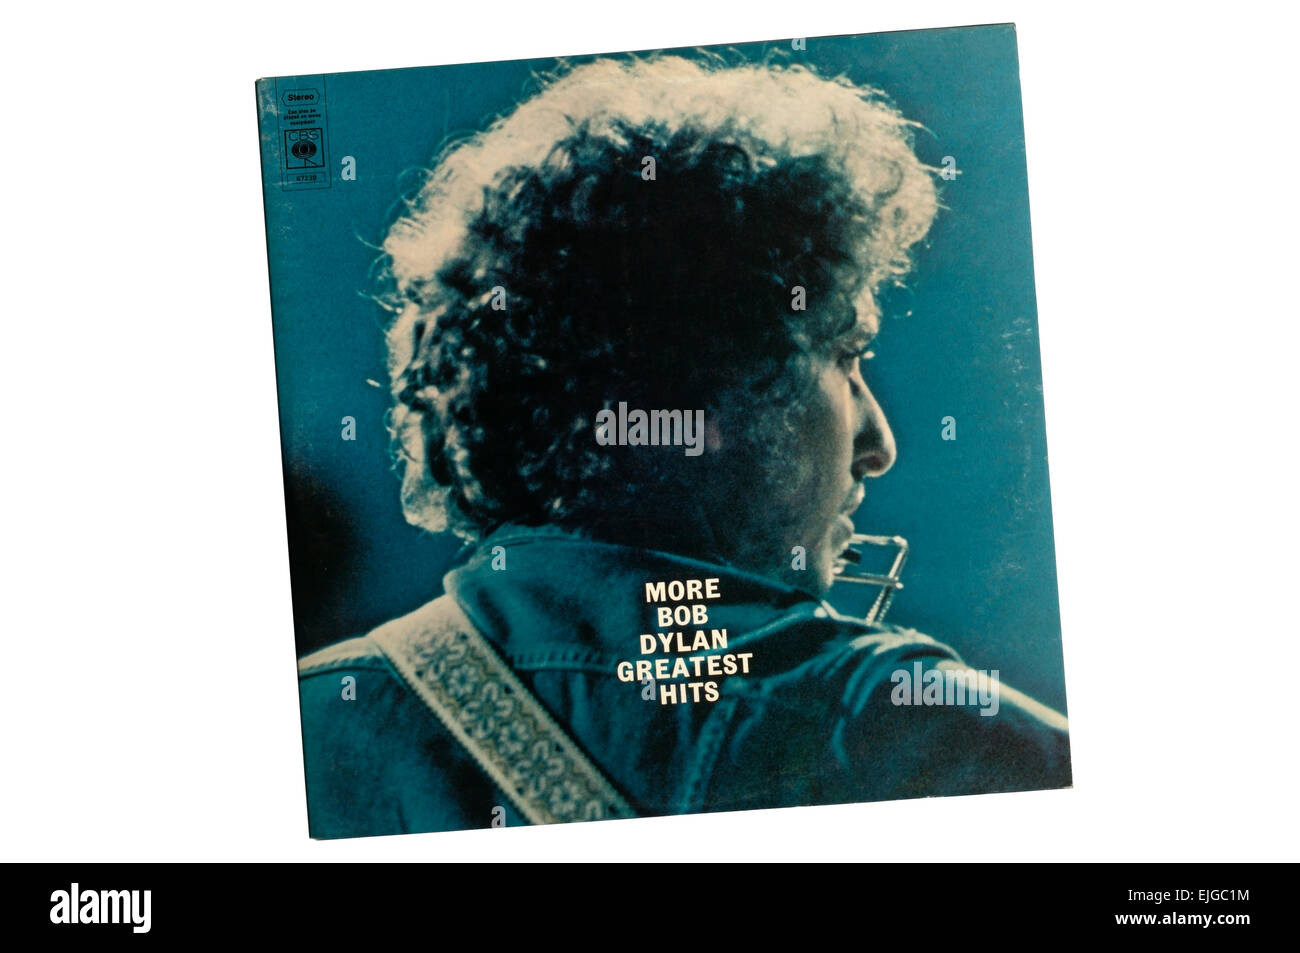 More Bob Dylan Greatest Hits, was Bob Dylan's second compilation album released in 1971. - Stock Image